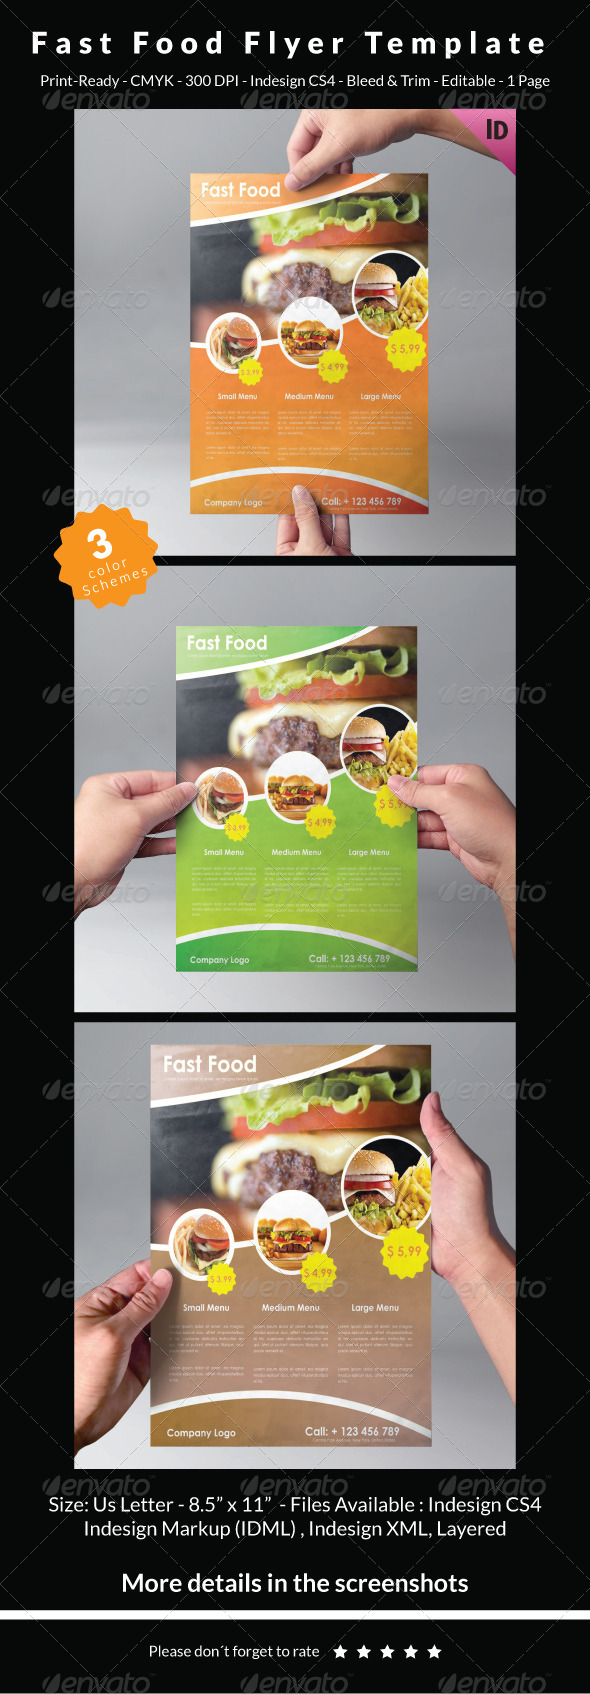 Fast Food Flyer Template - Restaurant Flyers